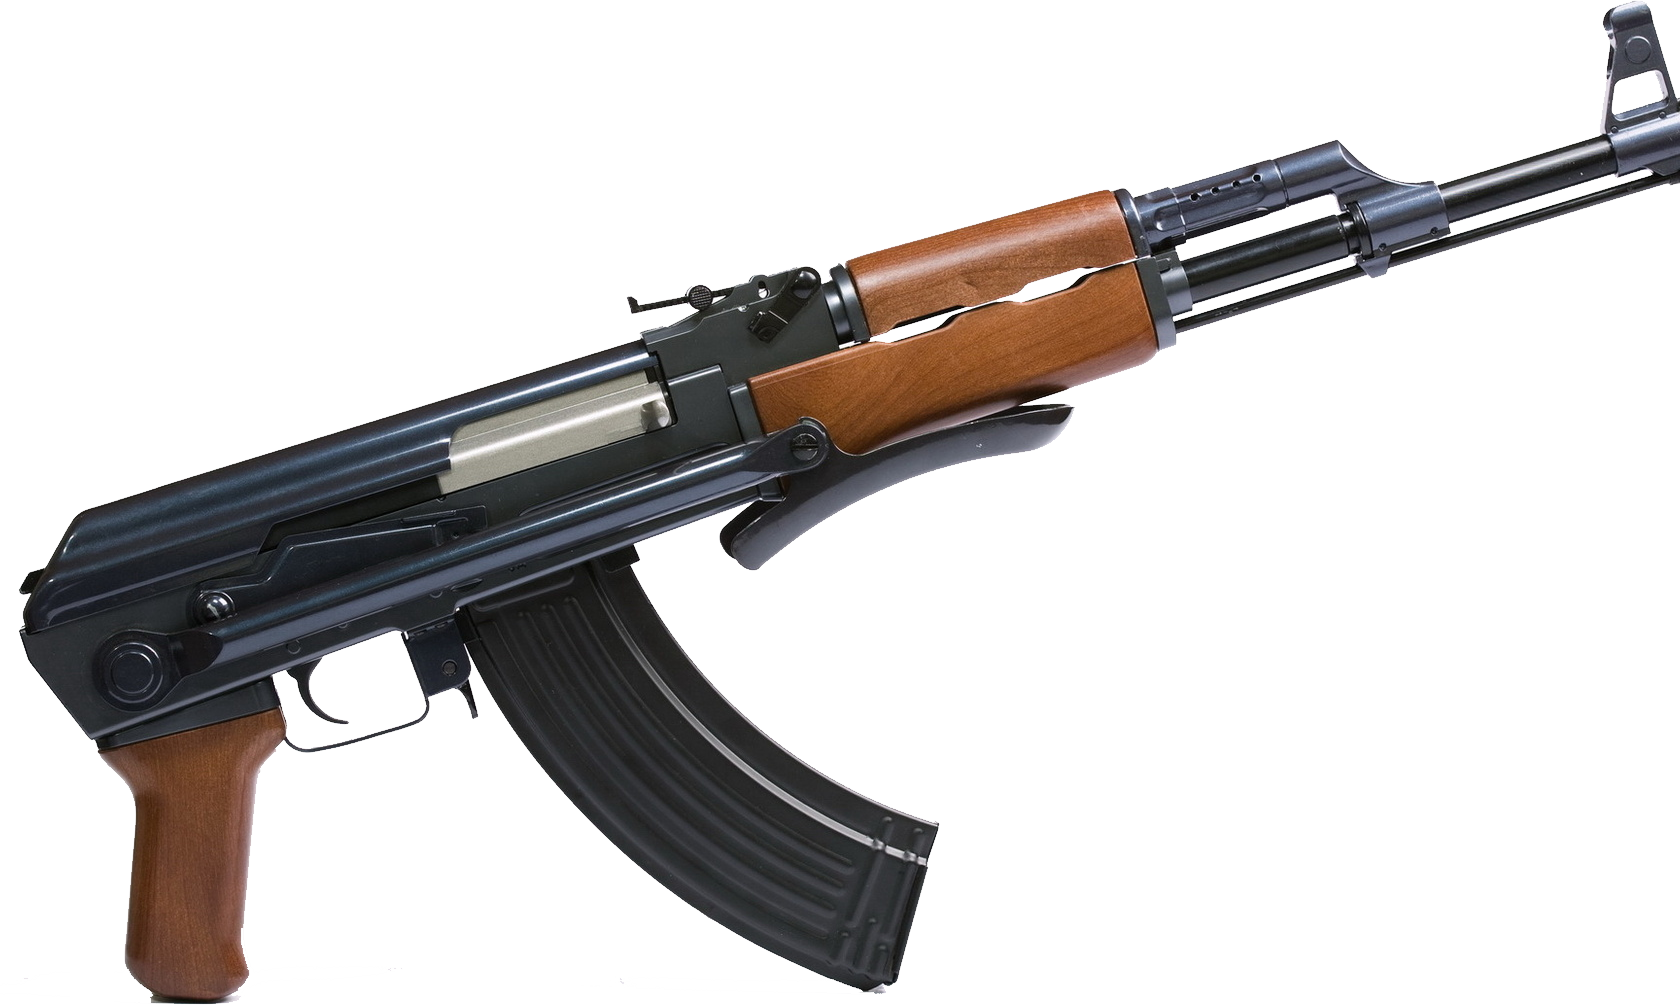 ak 47 png images free download kalashnikov png. Black Bedroom Furniture Sets. Home Design Ideas